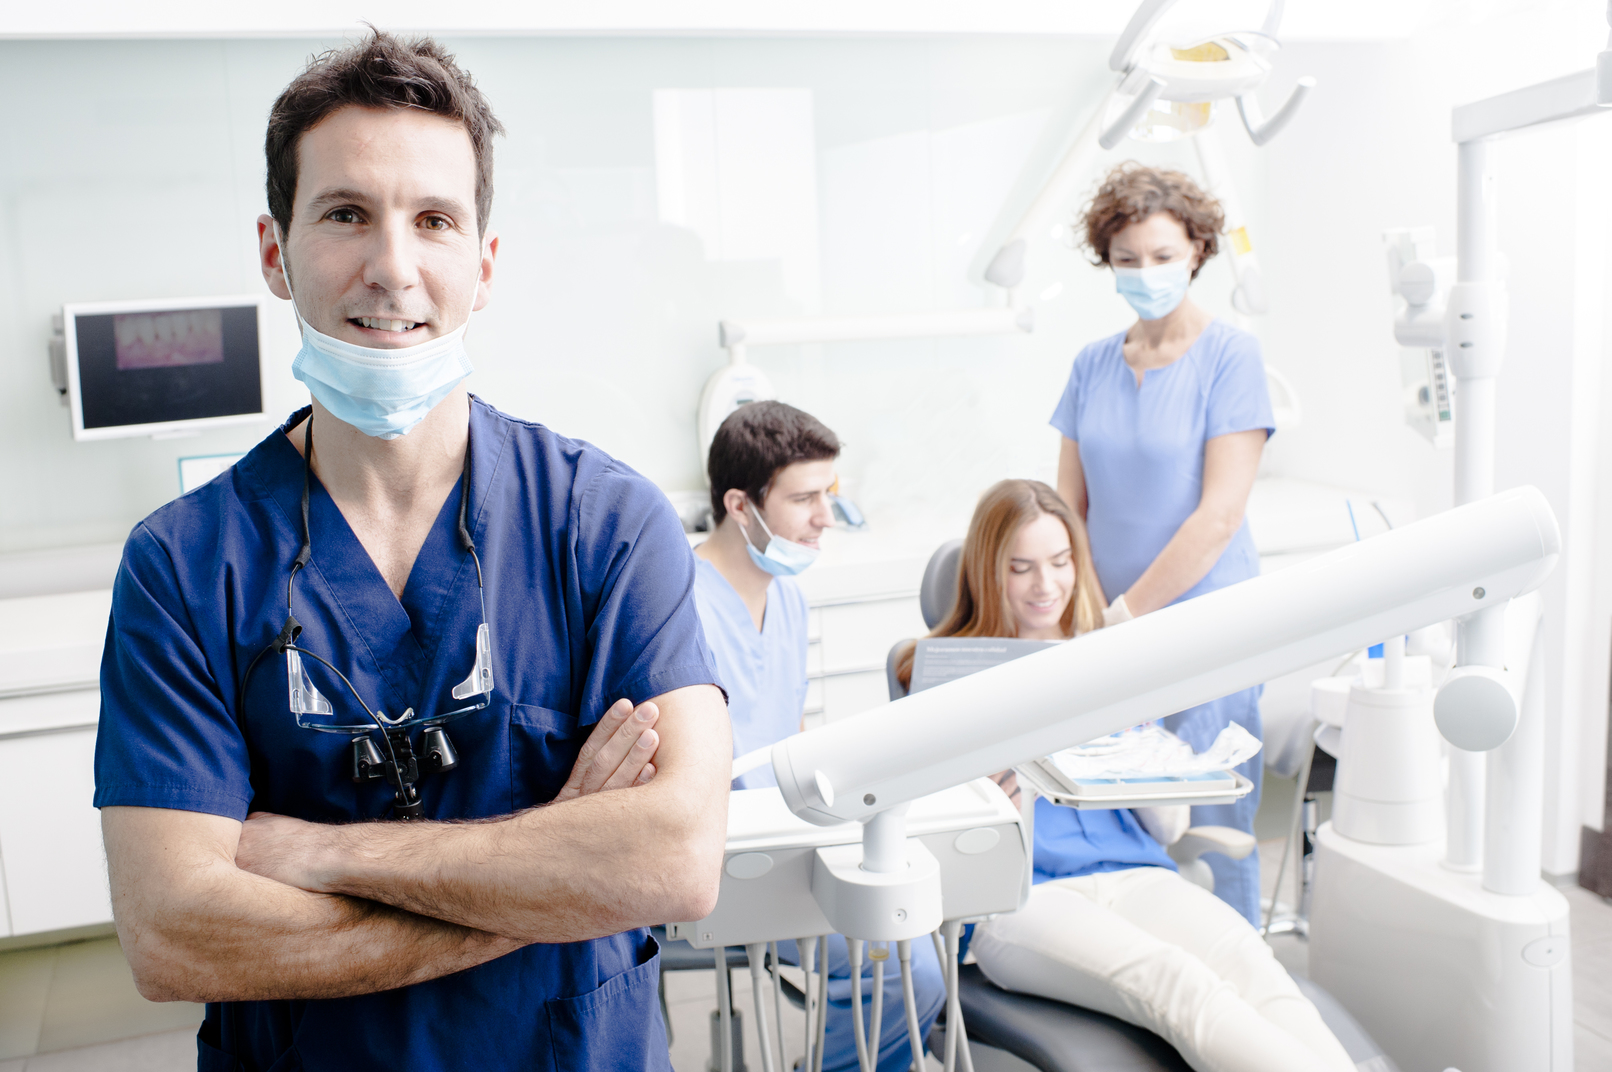 Looking for a Job? Climb the Dental Chair First